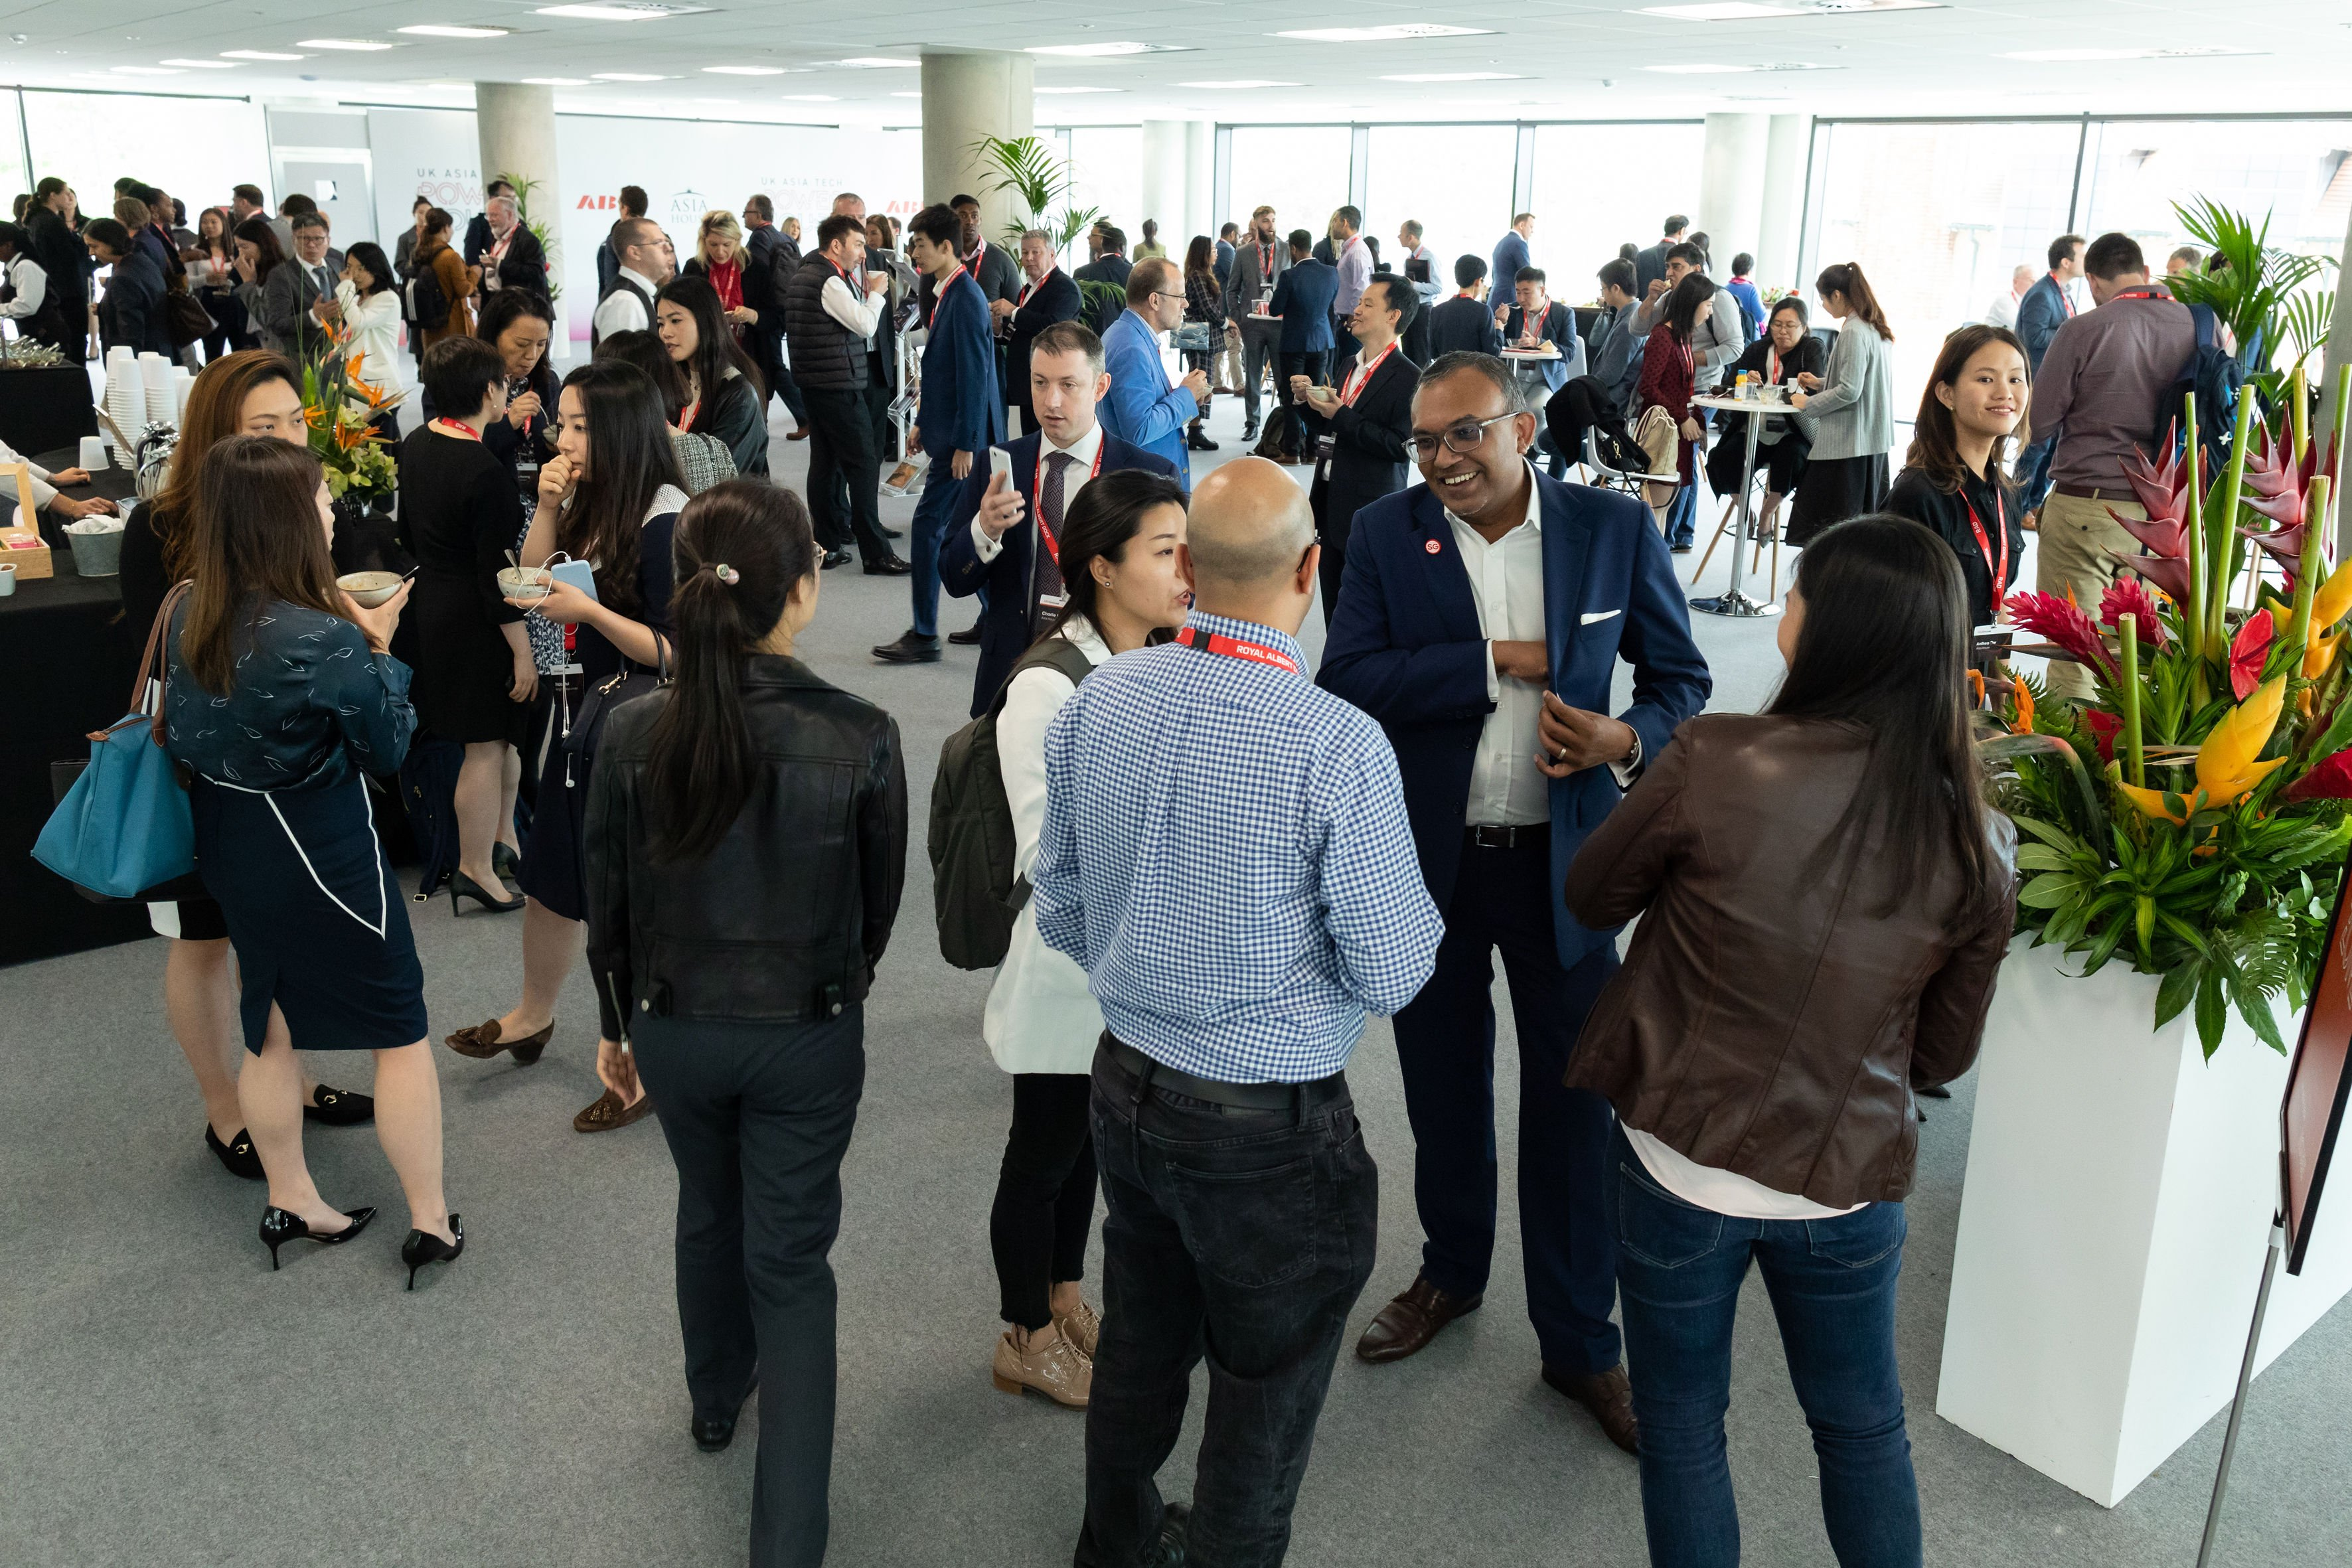 A networking event at the Royal Docks